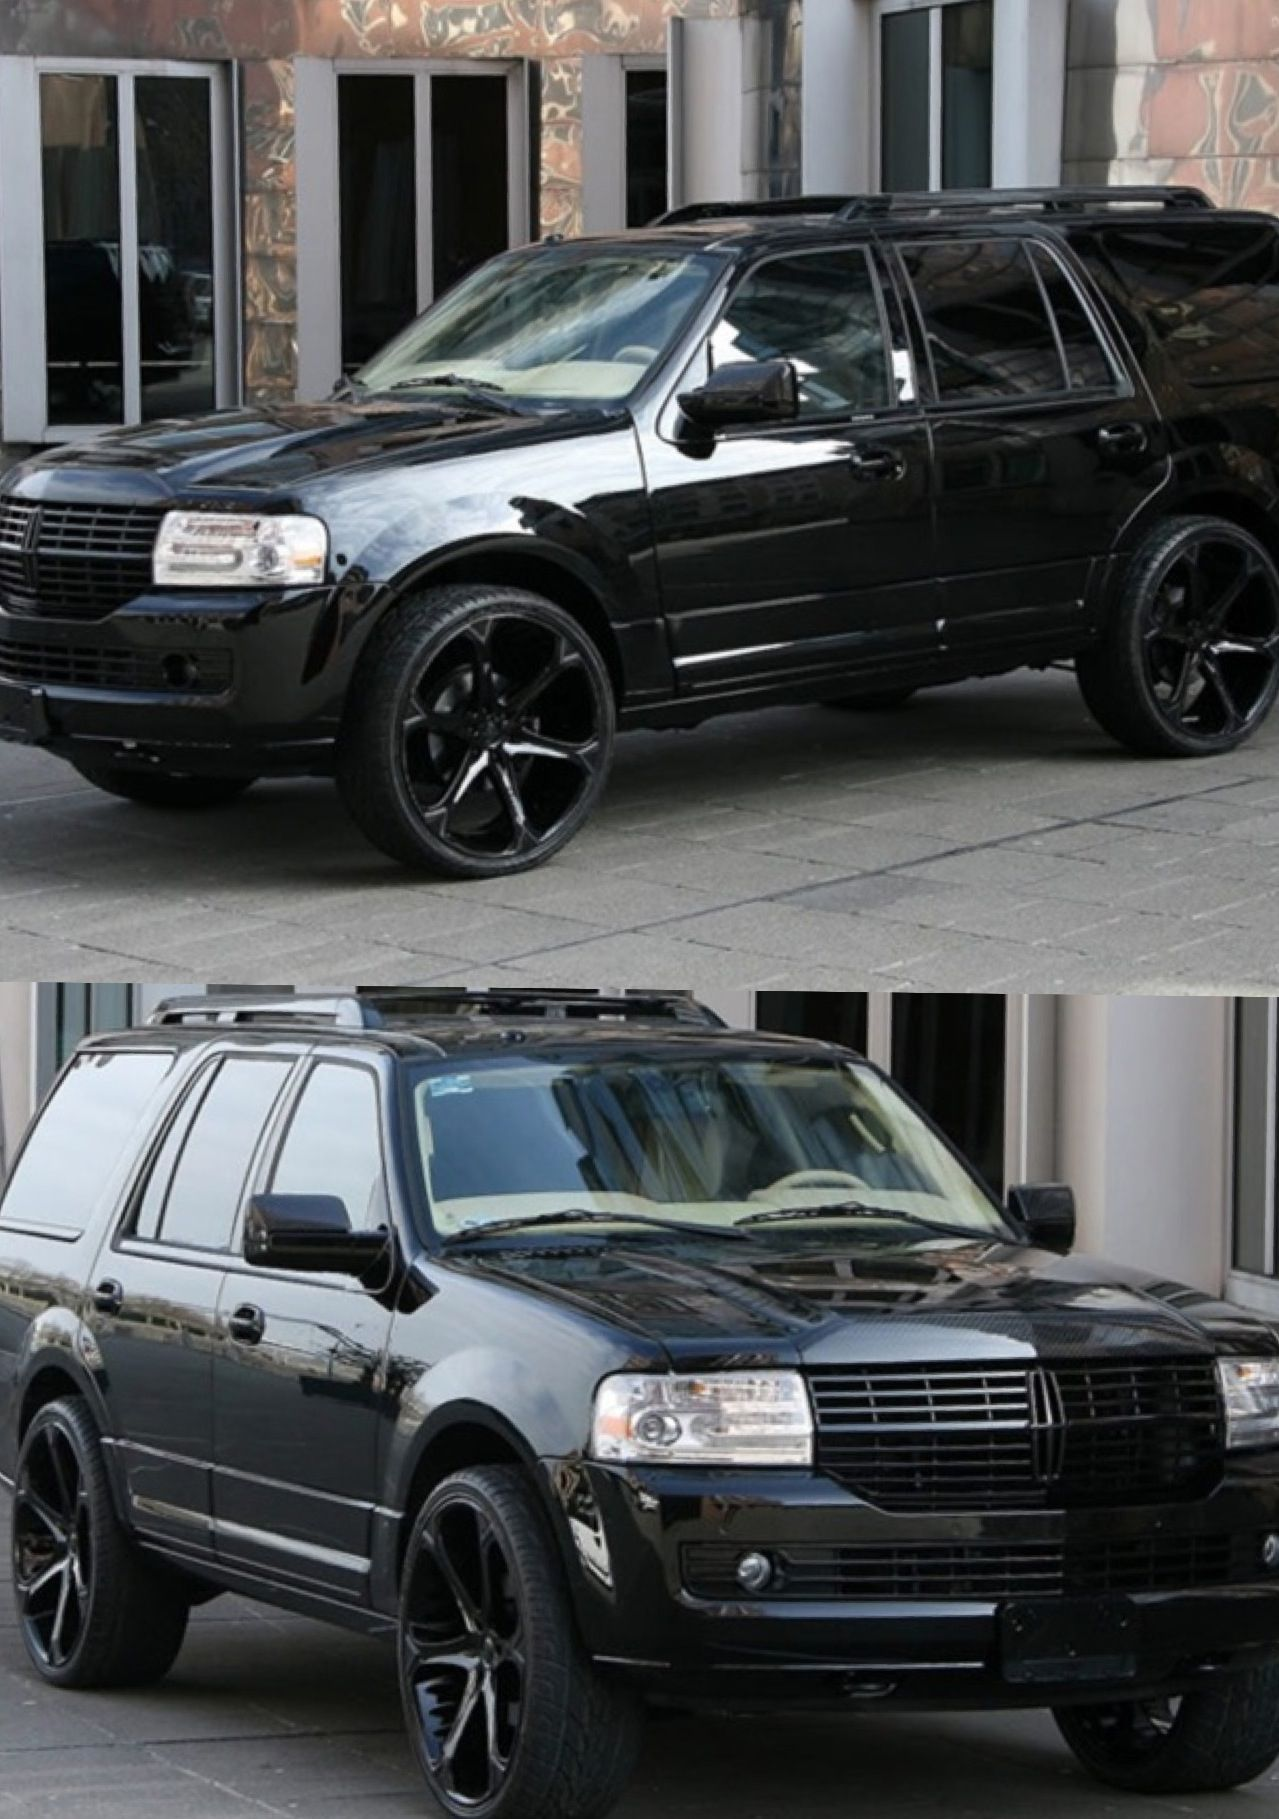 Lincoln navigator because they needed a family of 5 car